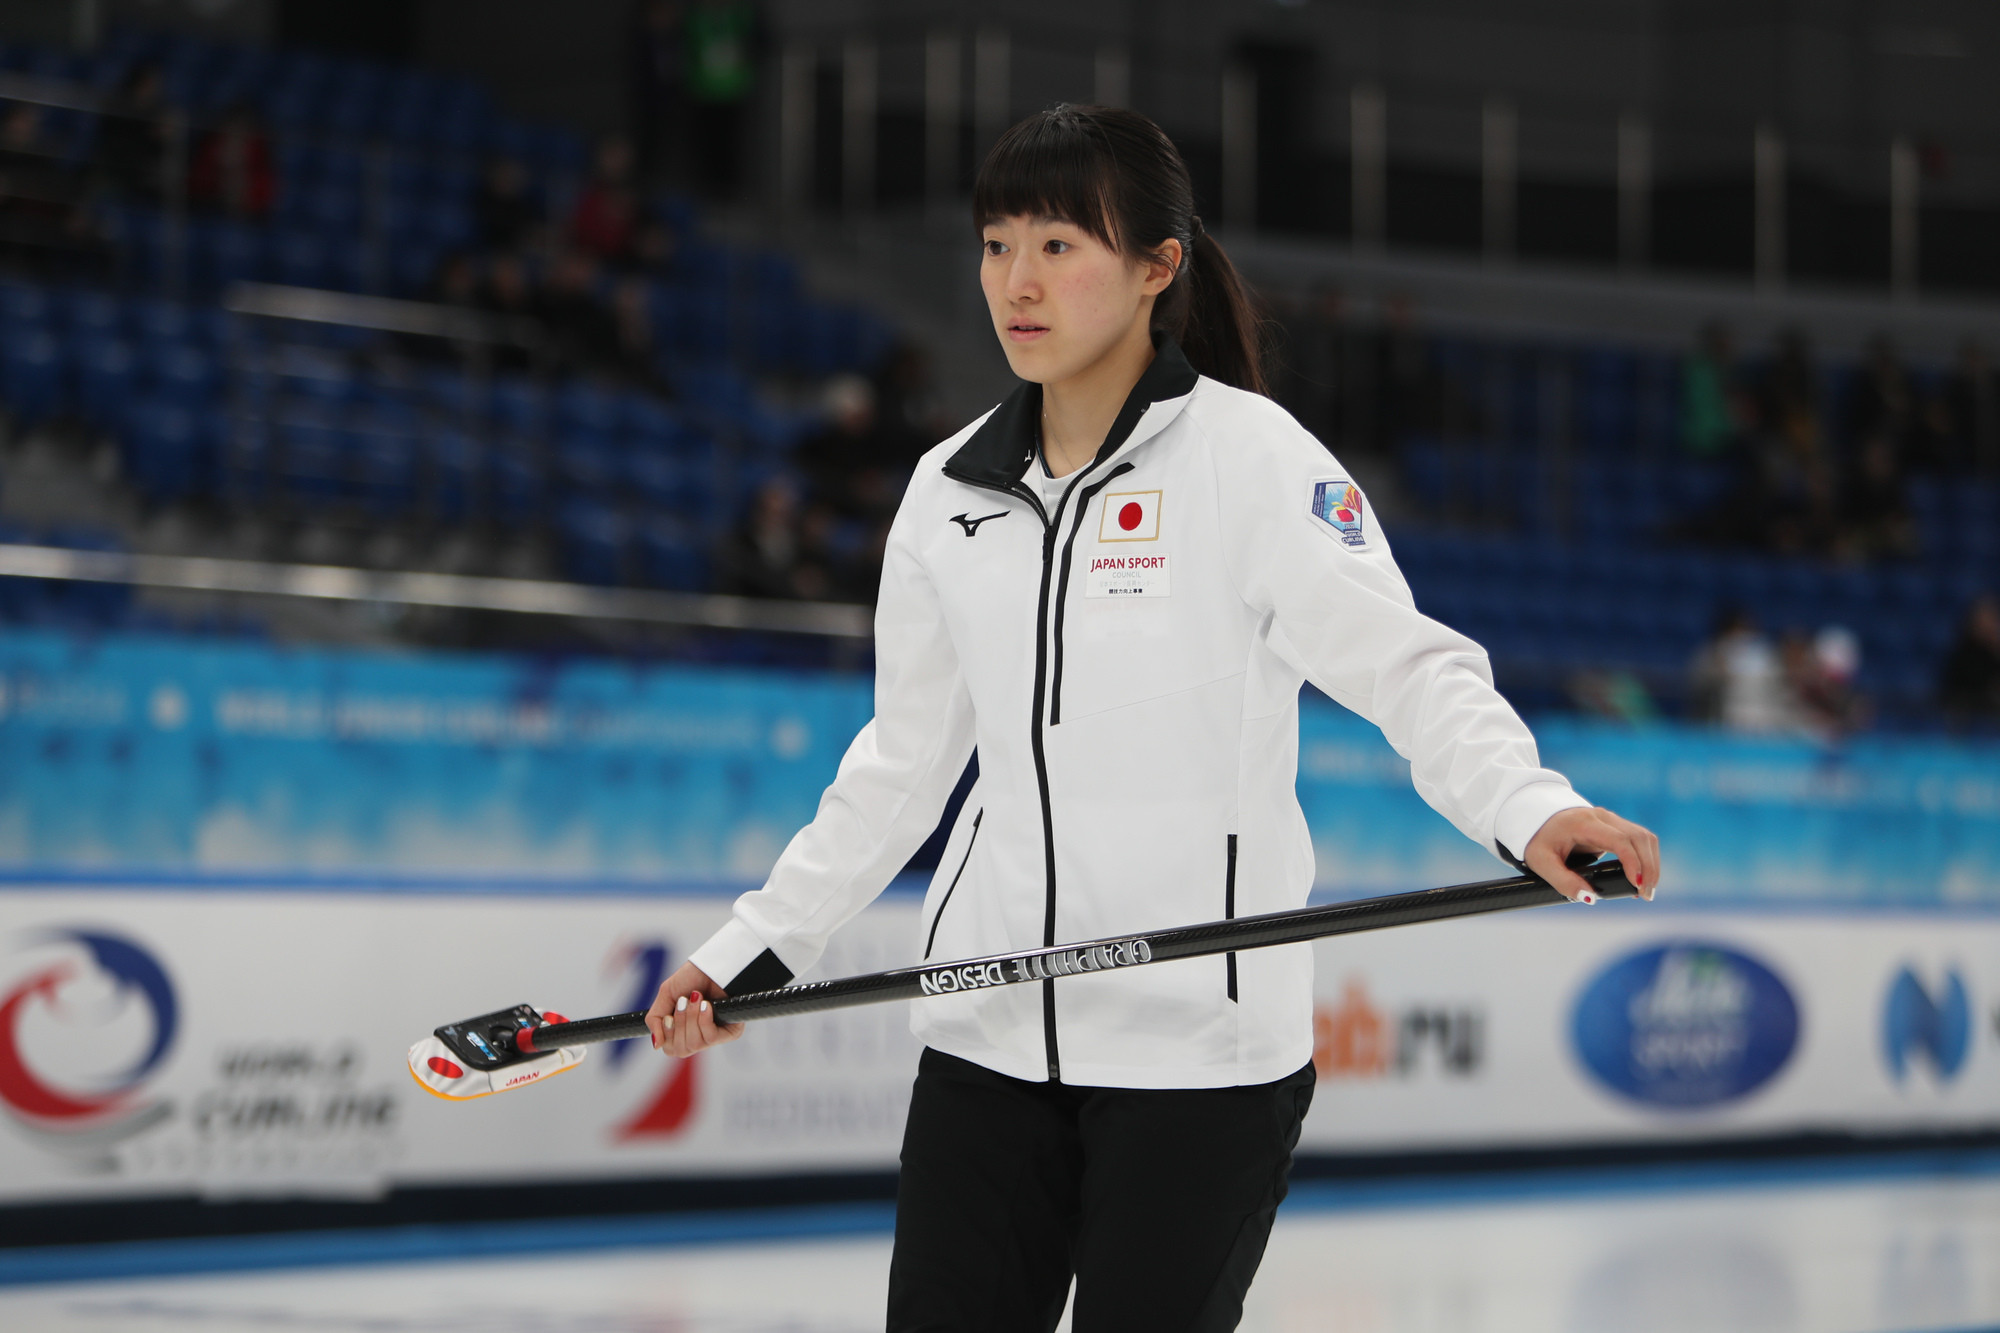 Japan skip Sae Tamamoto leads one of three unbeaten women's teams so far in the competition ©WCF/Richard Gray